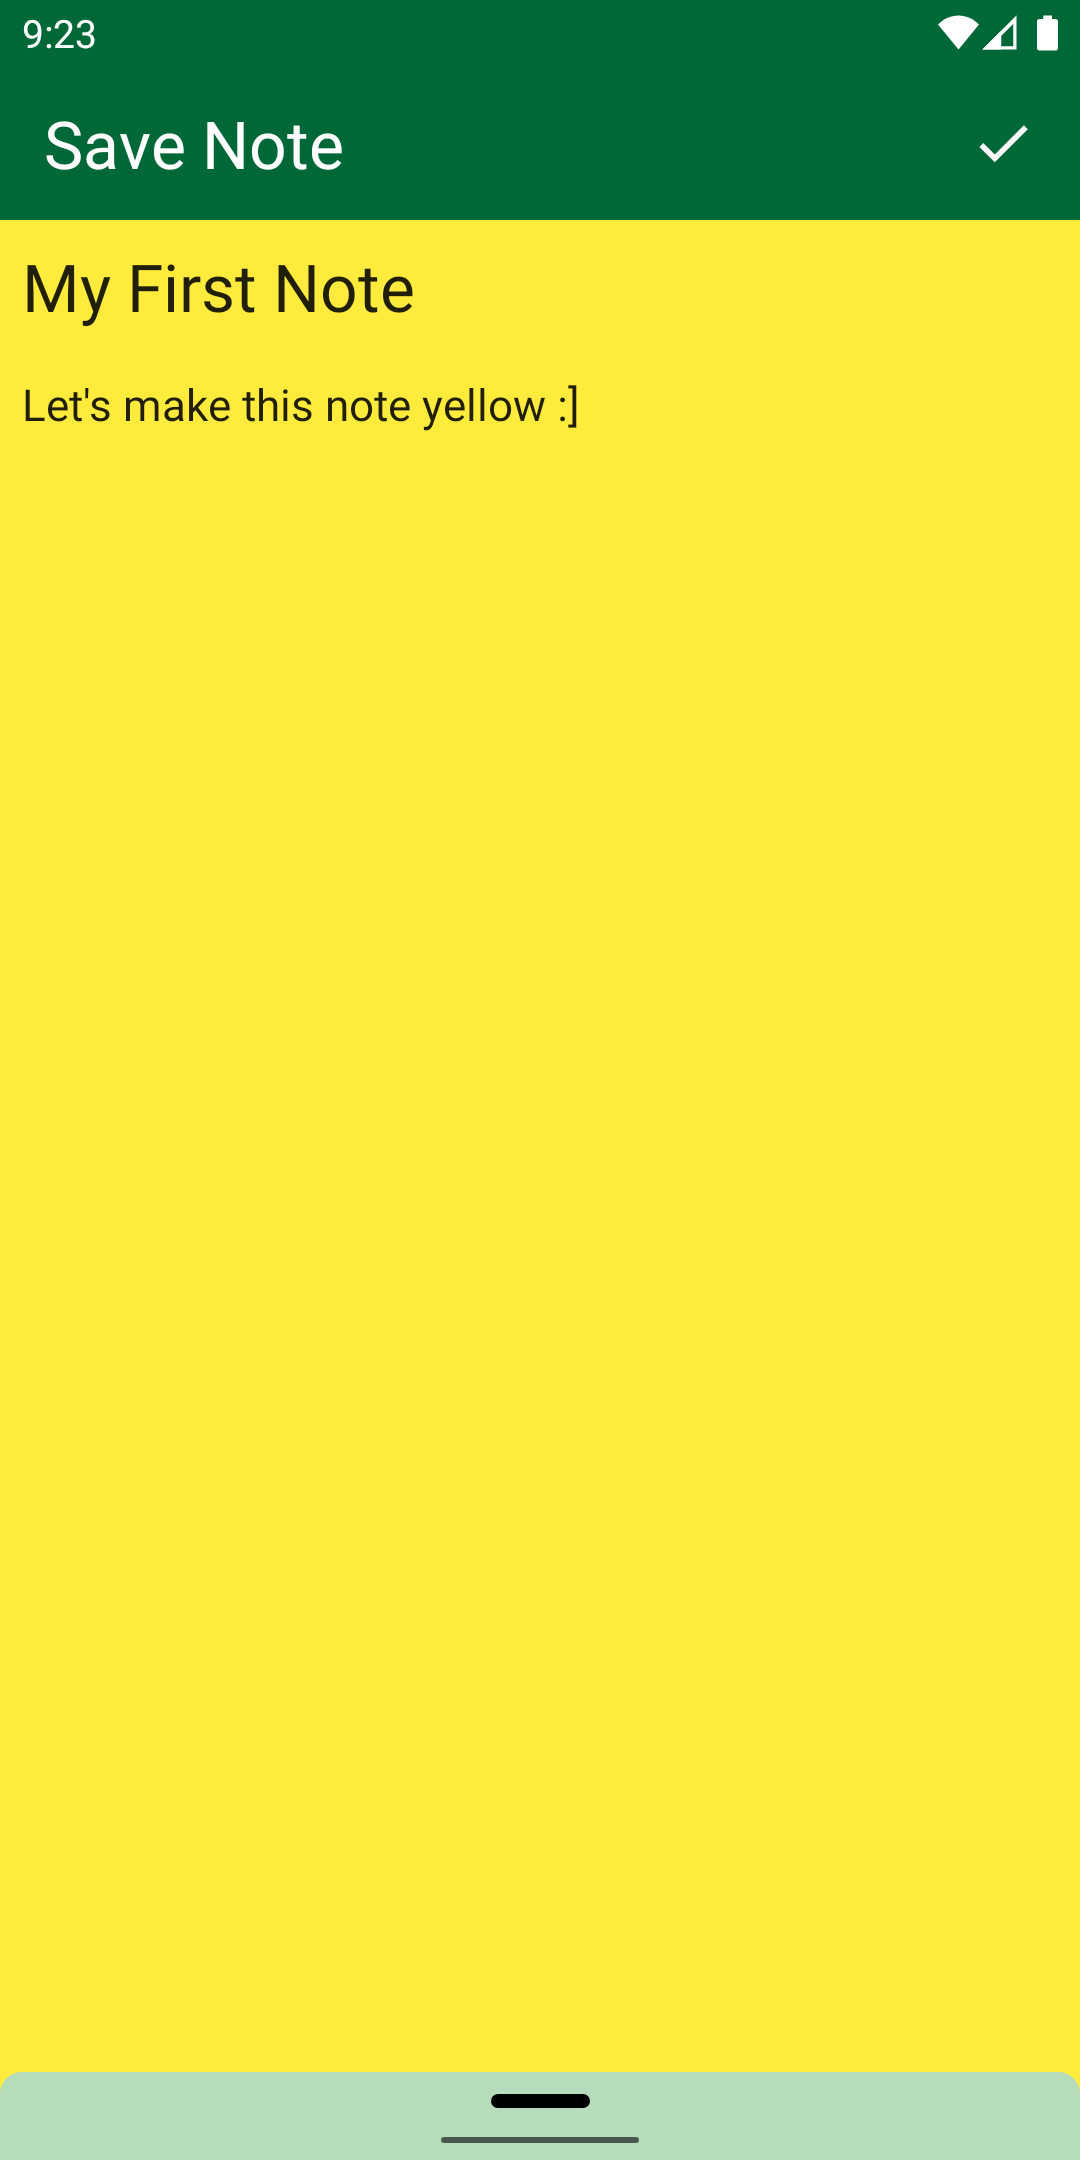 Yellow screen with My First Note info and green Save Note bar at the top.